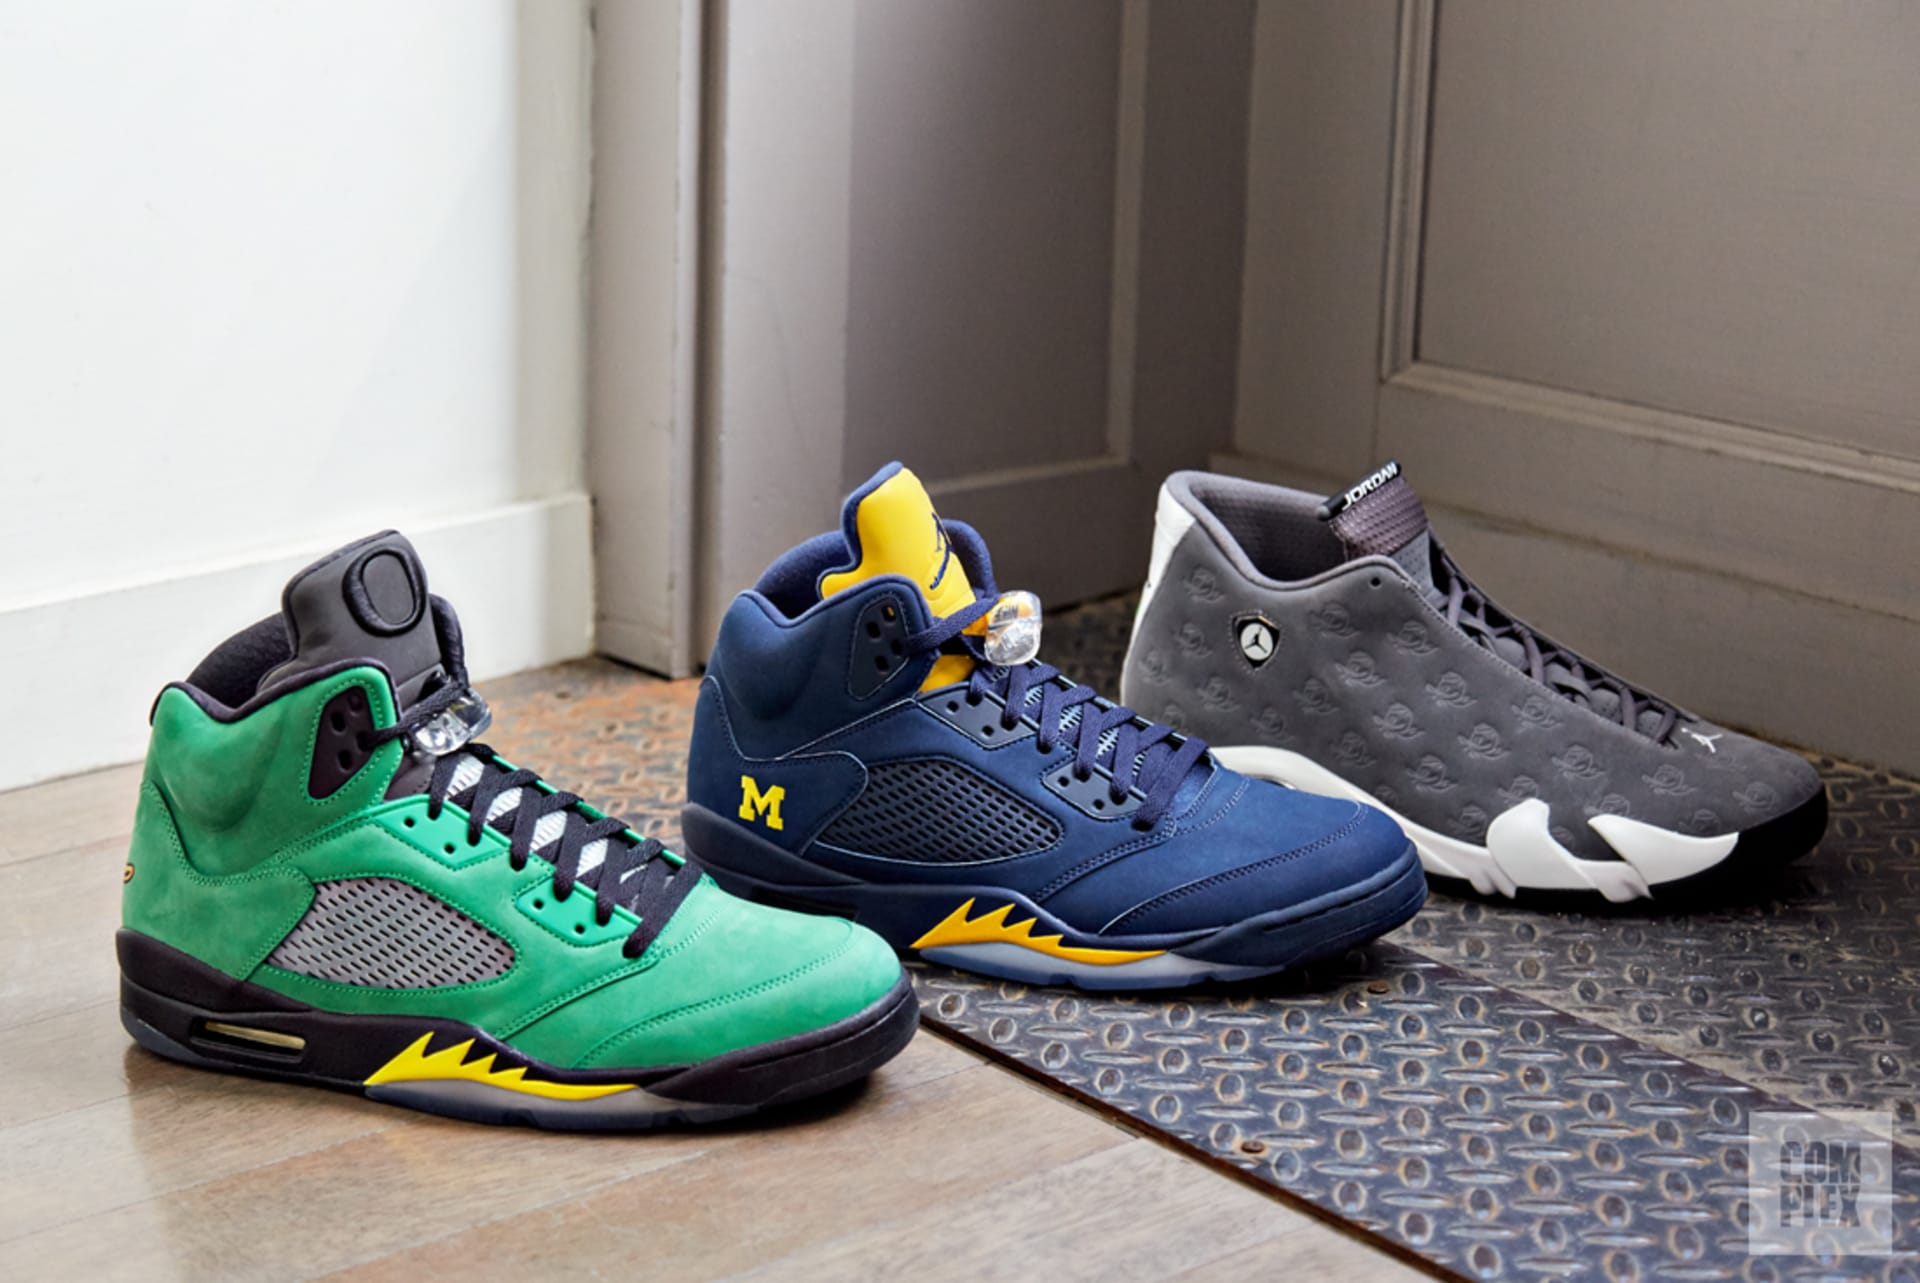 Air Jordan PEs made for the University of Oregon and Michigan. Sneakers  courtesy of Stadium Goods. Image via Complex Original David Cabrera 40fd1fdc7